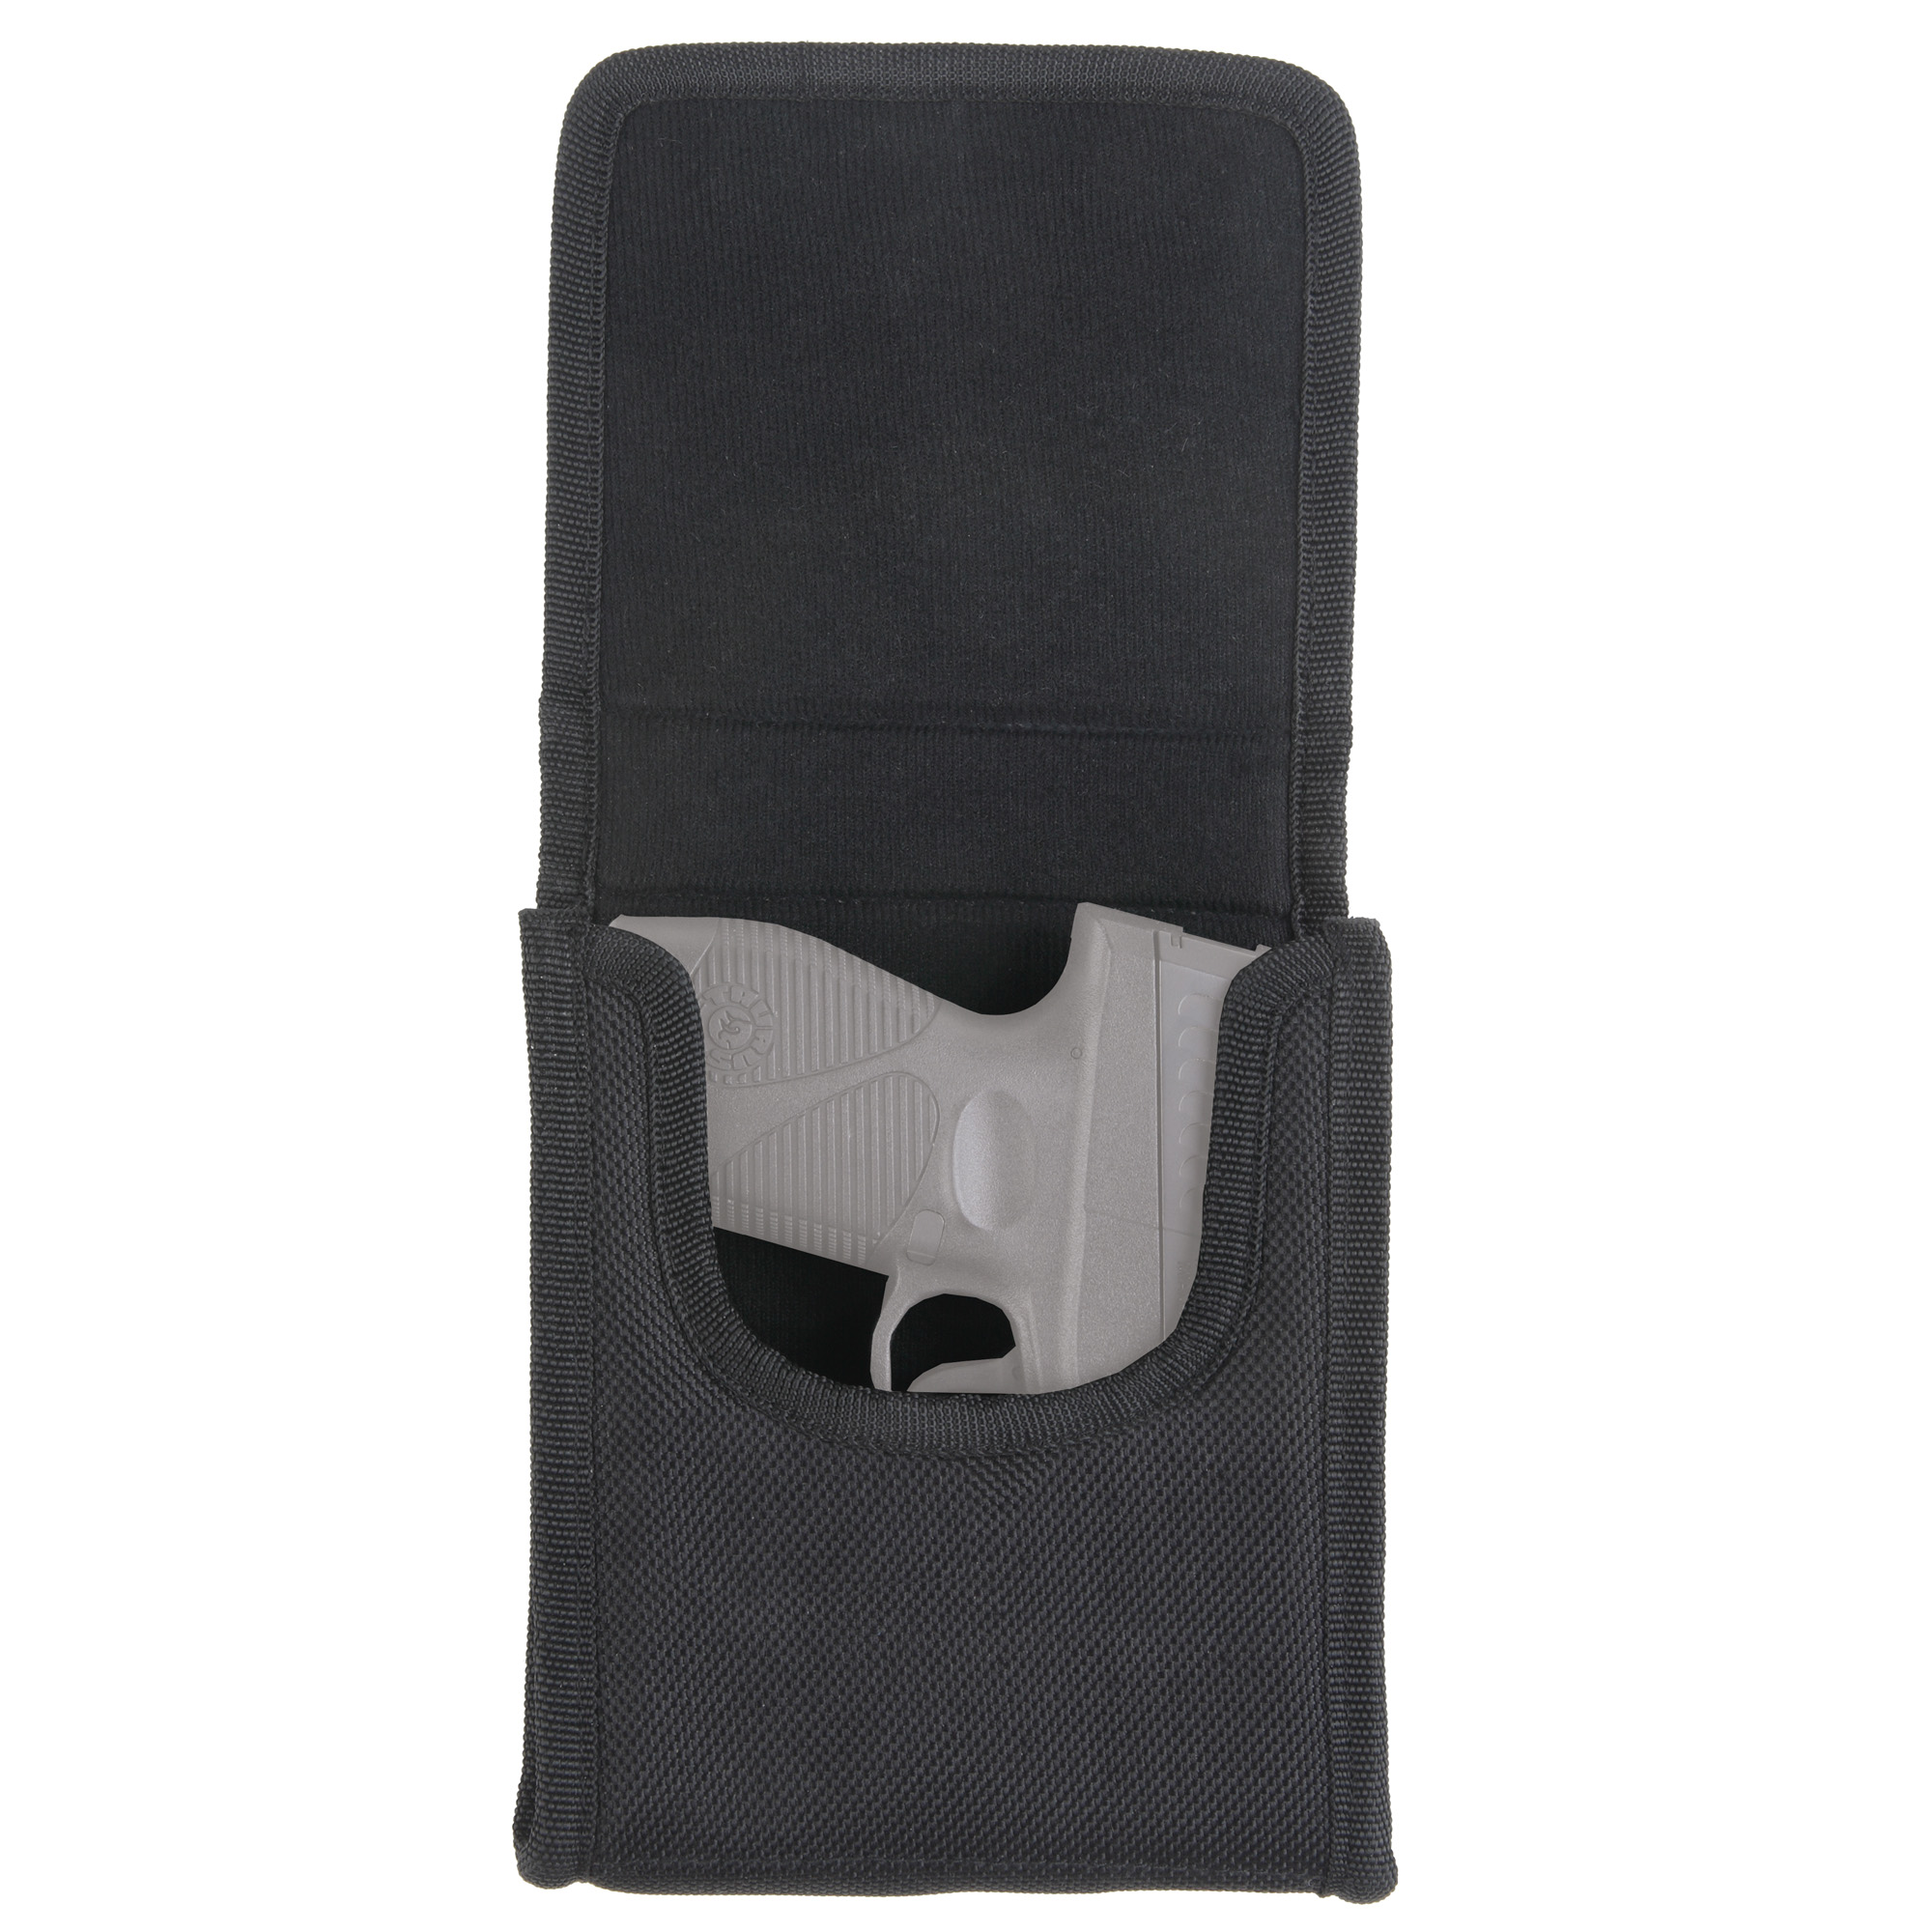 This vertical cell phone holster comes with belt loop and clip for easy carrying. It has magnetic latches for easy opening and closing and conceals the weapon 100%.